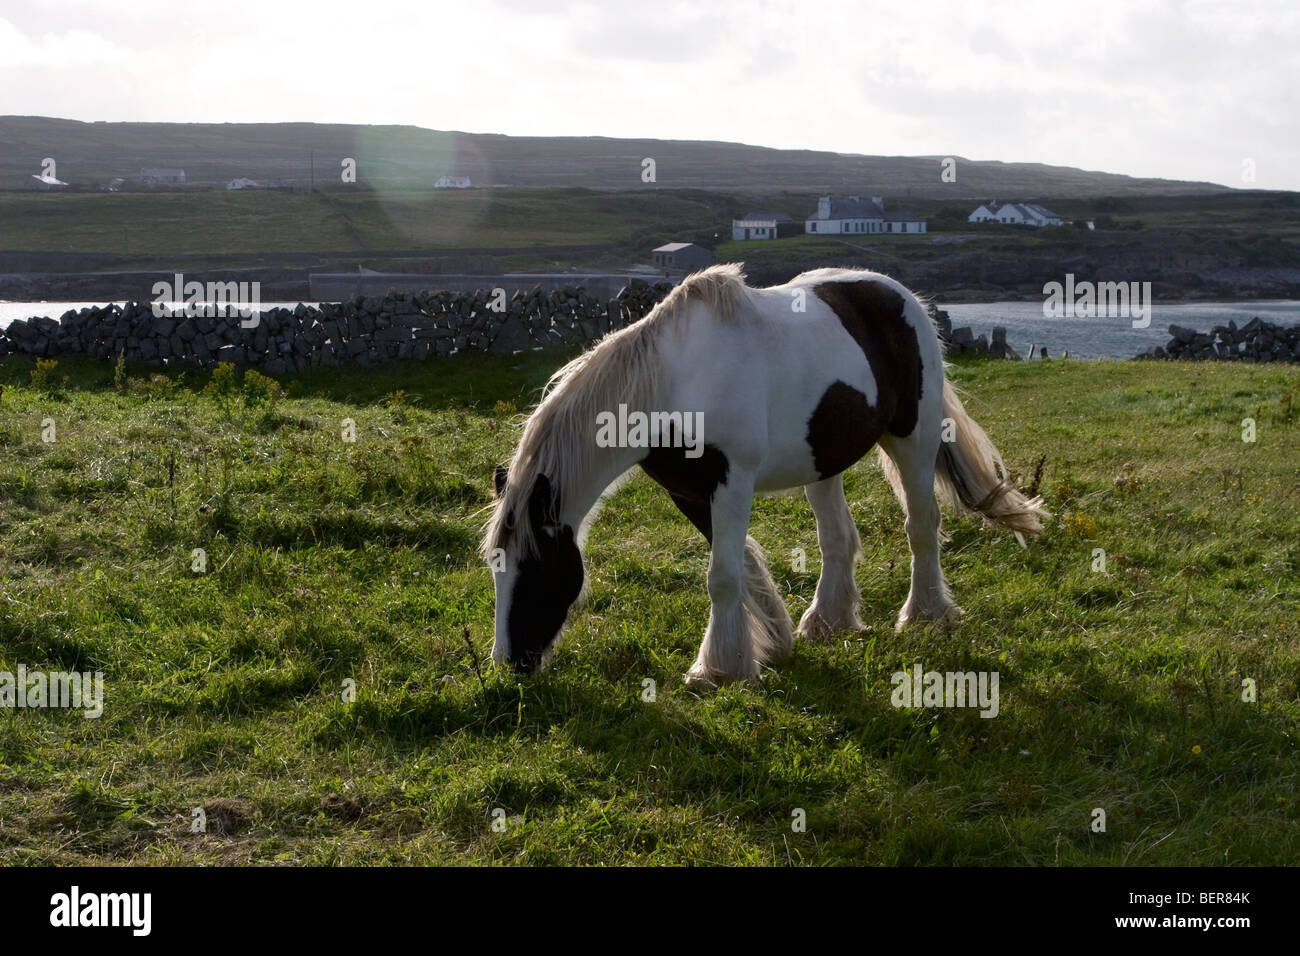 Horse in field surrounded by traditional stonewalls, Inis Mor (Inismore) Island, Aran Islands, Co. Galway, Ireland - Stock Image